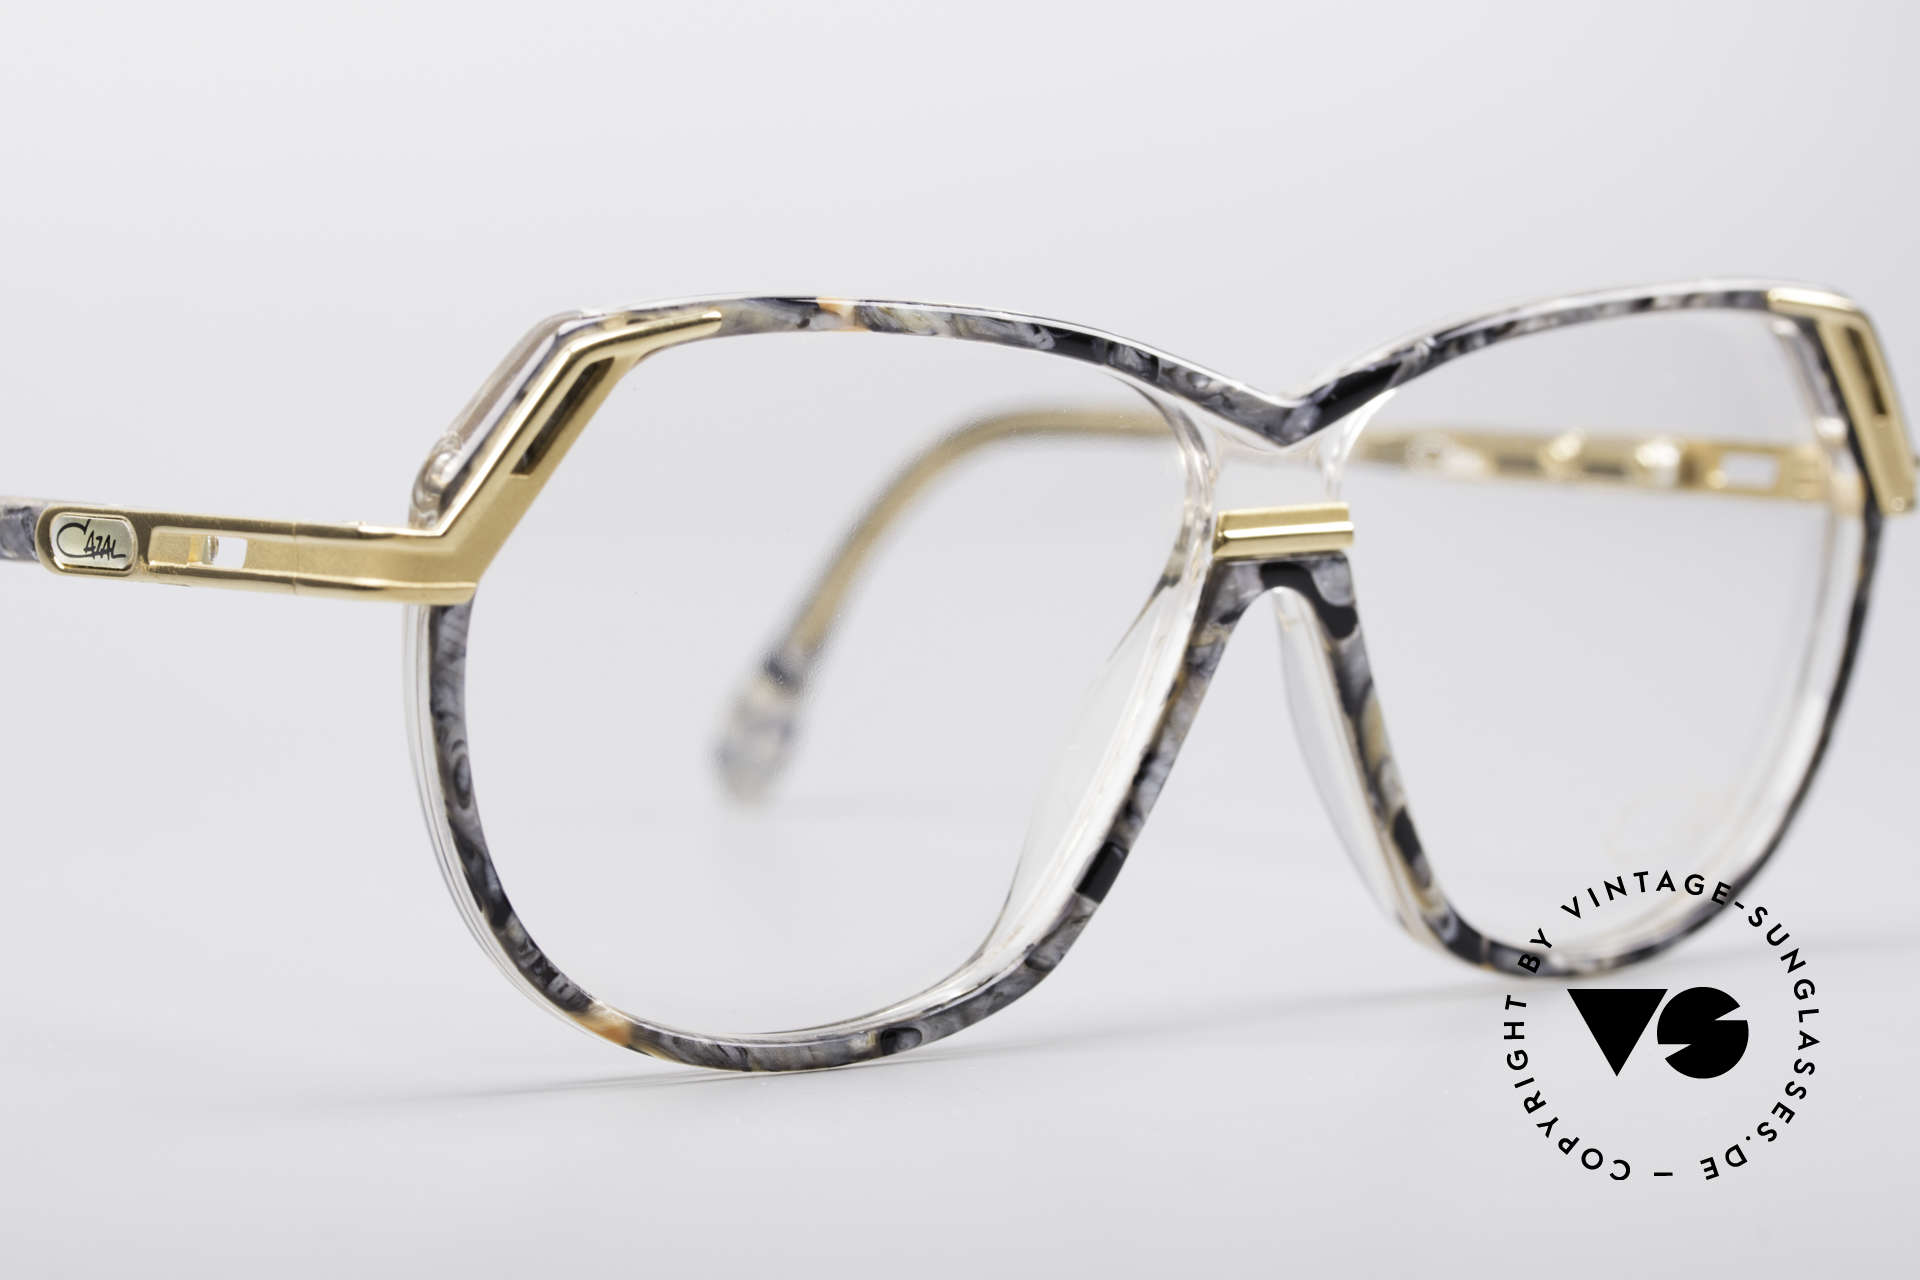 Cazal 339 No Retro 90's Vintage Specs, frame (M size 56/10) can be glazed optionally, Made for Women